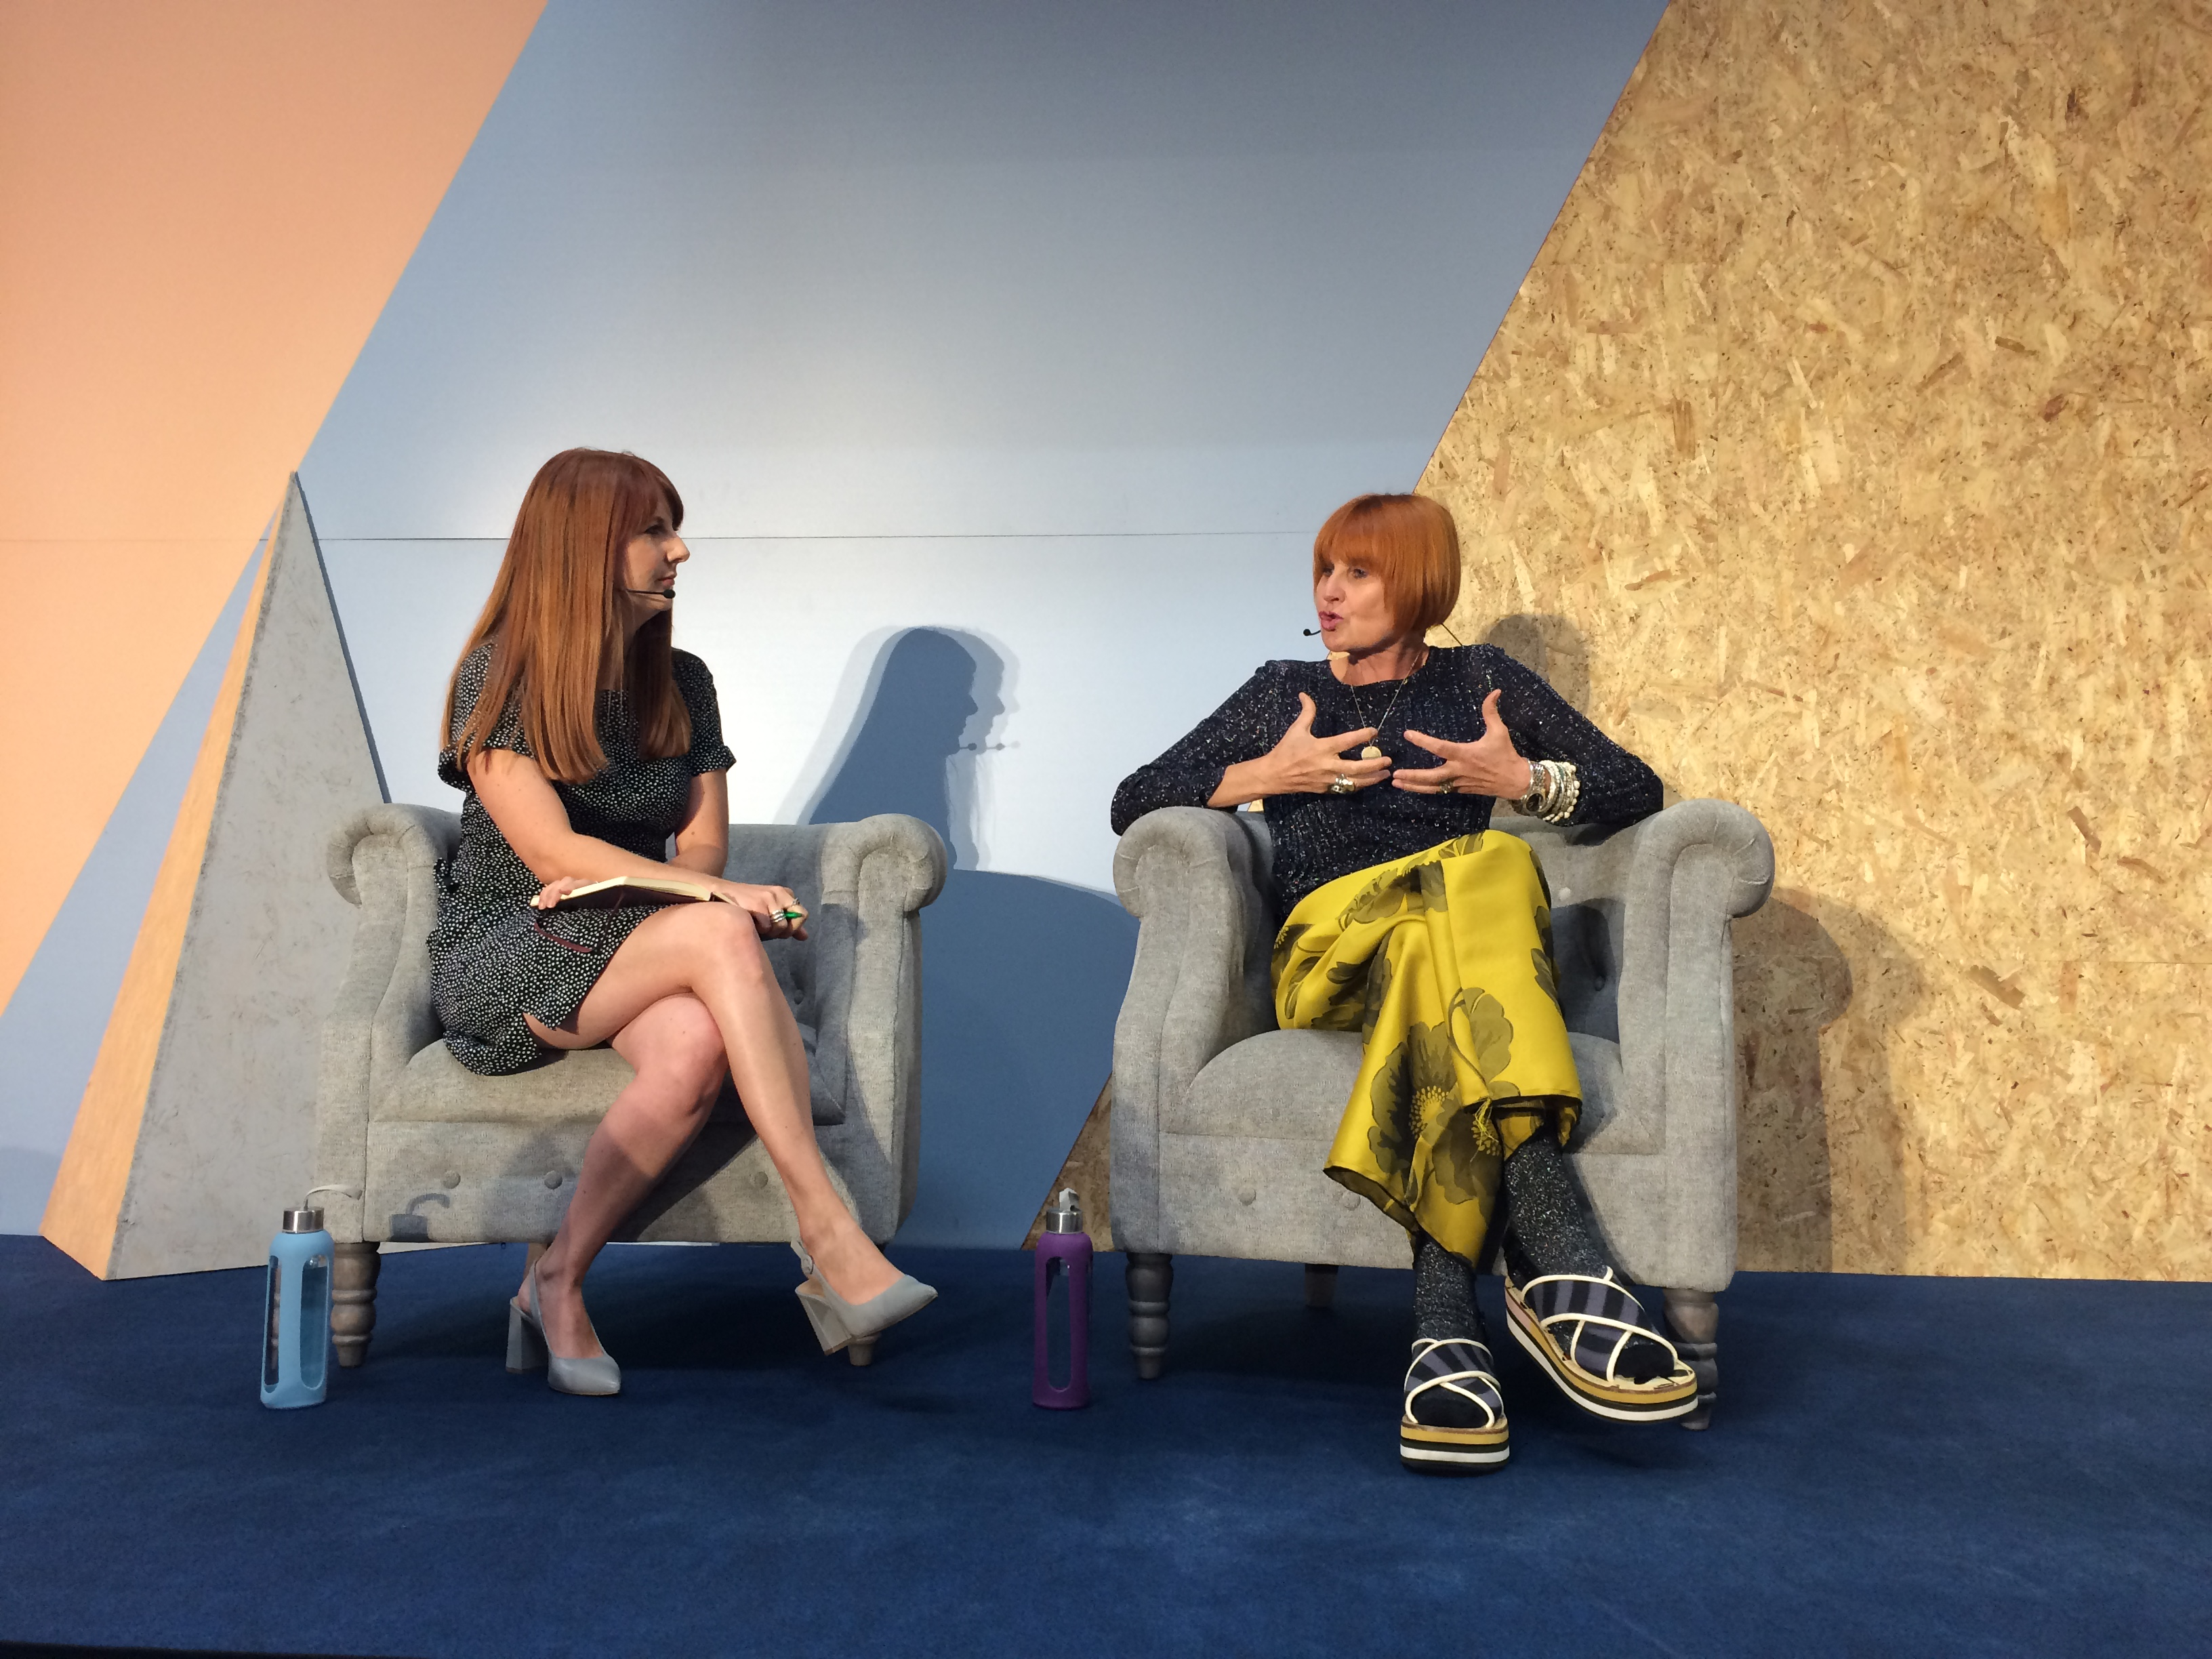 Above: Mary Portas was interviewed by Ashley Armstrong, retail editor of The Times on stage at Autumn Fair this week.